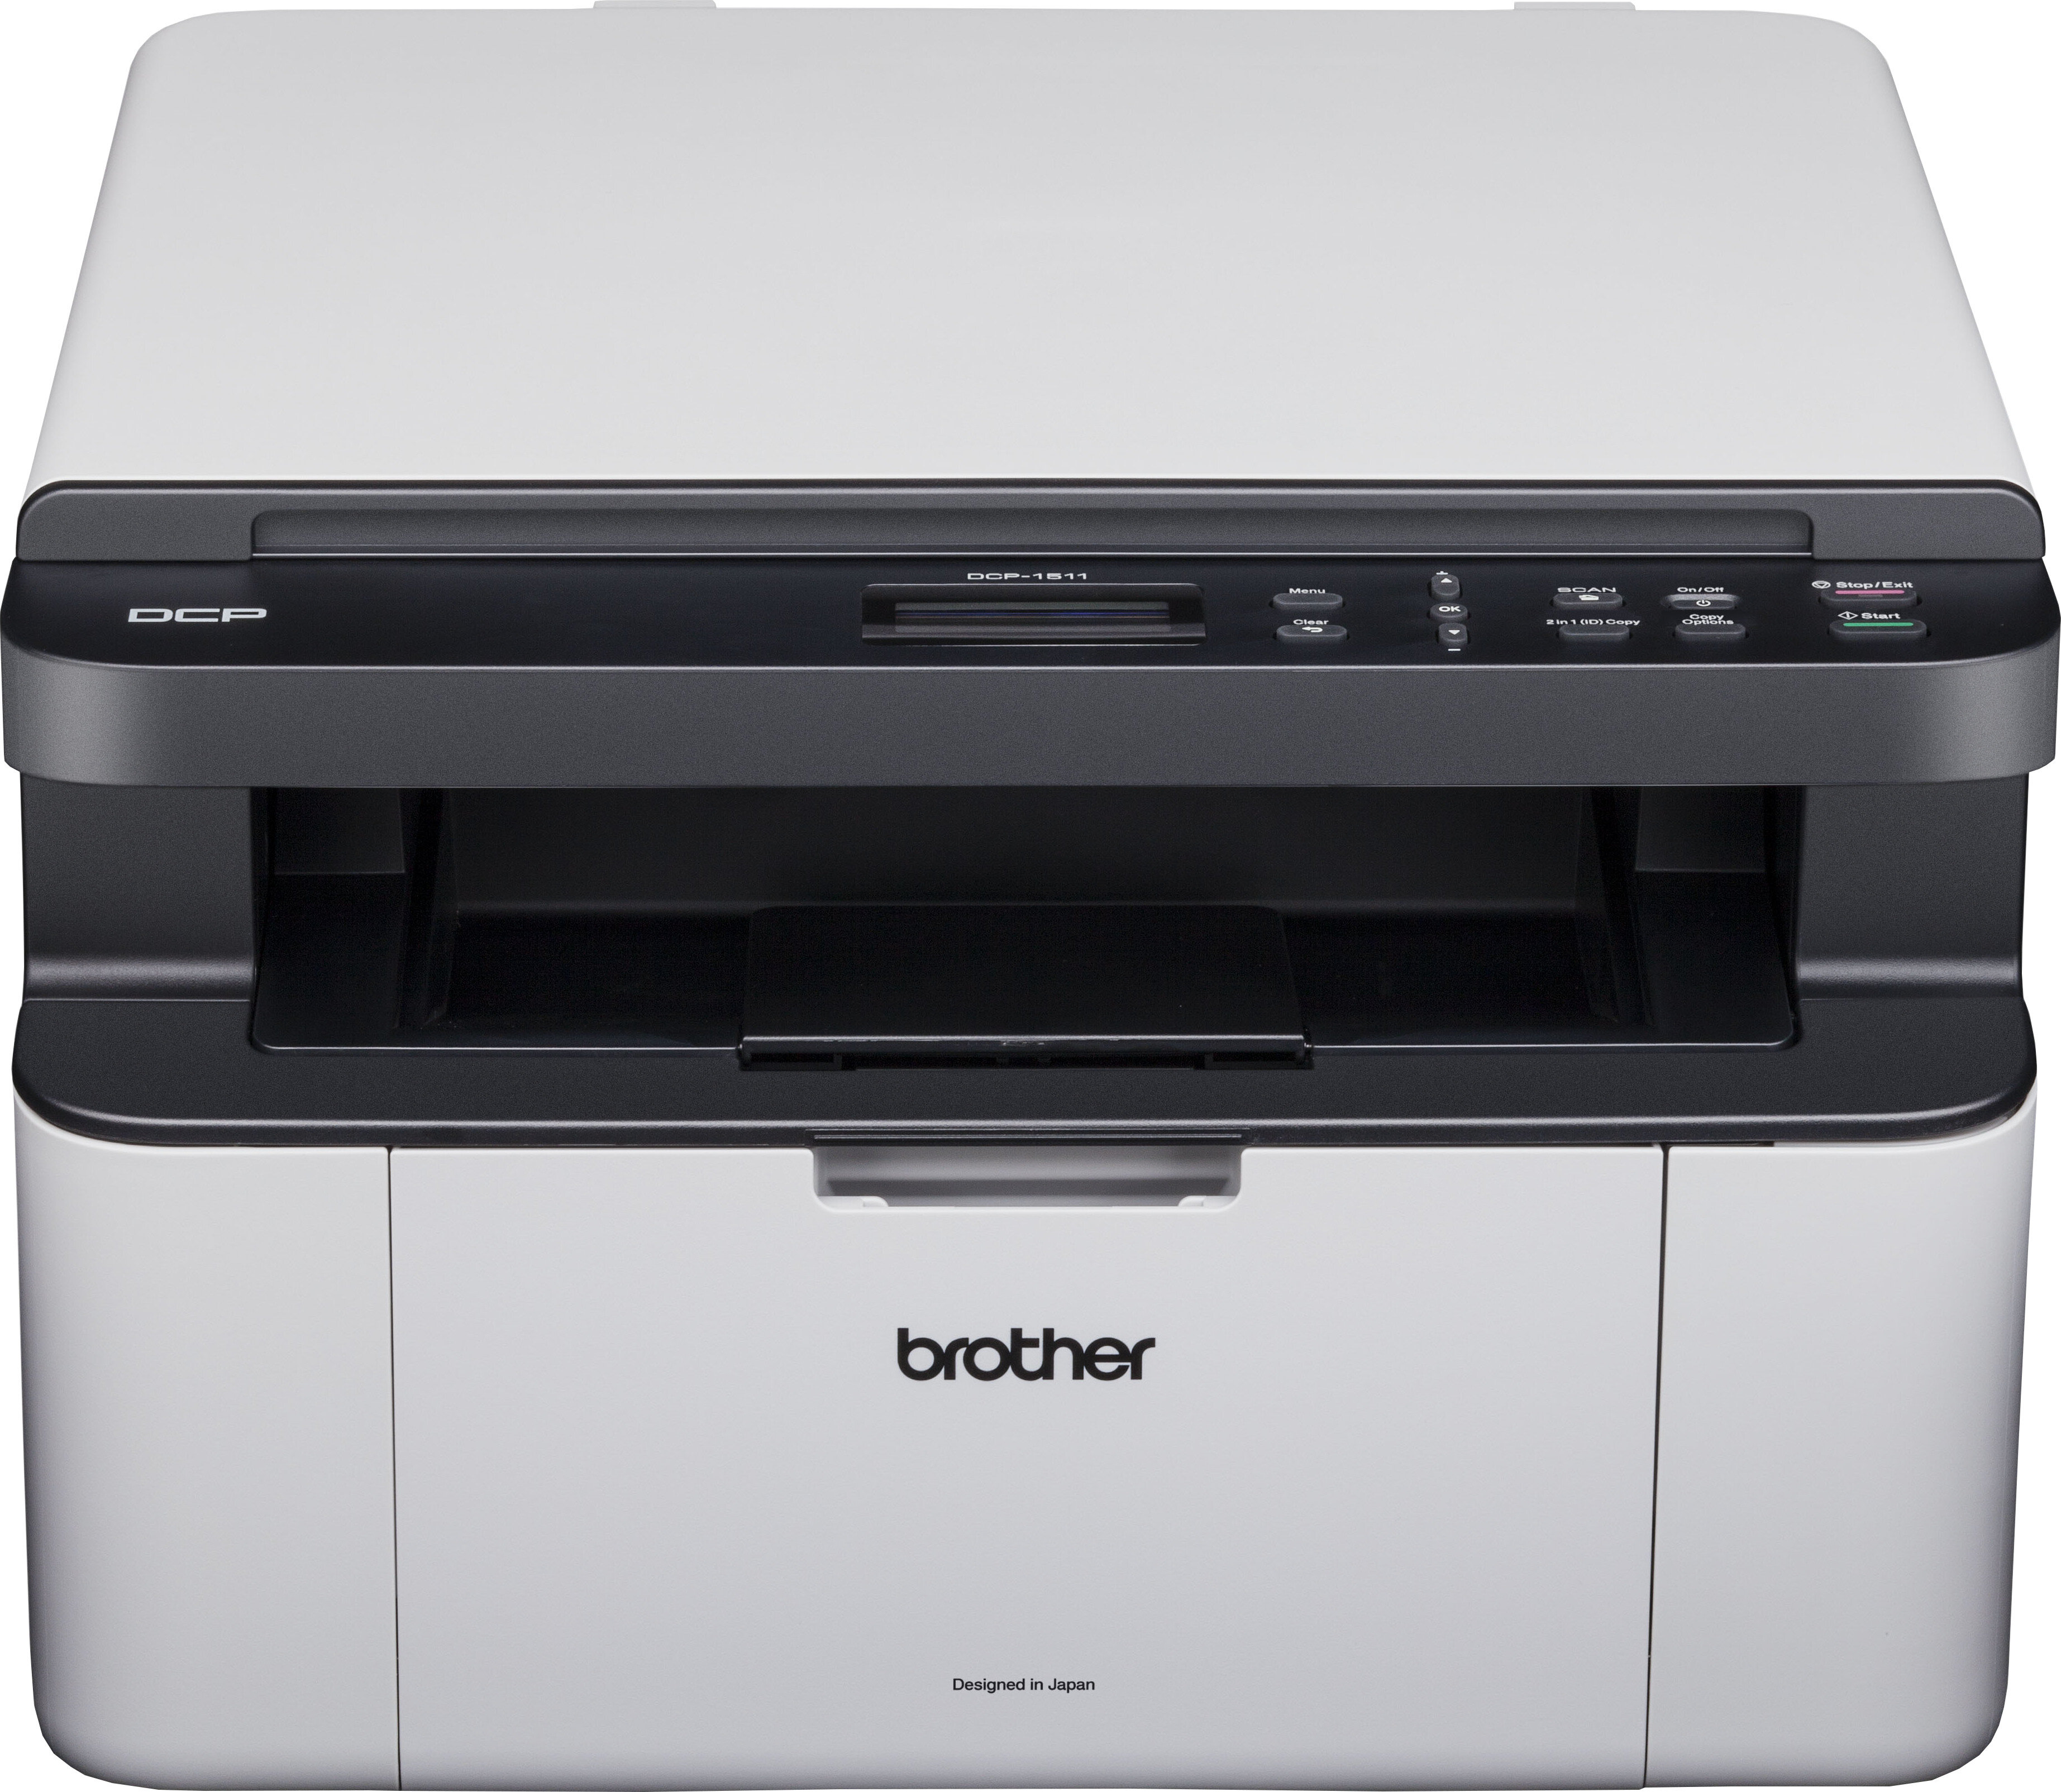 Review máy in laser đa năng scan, fax Brother MFC 1811